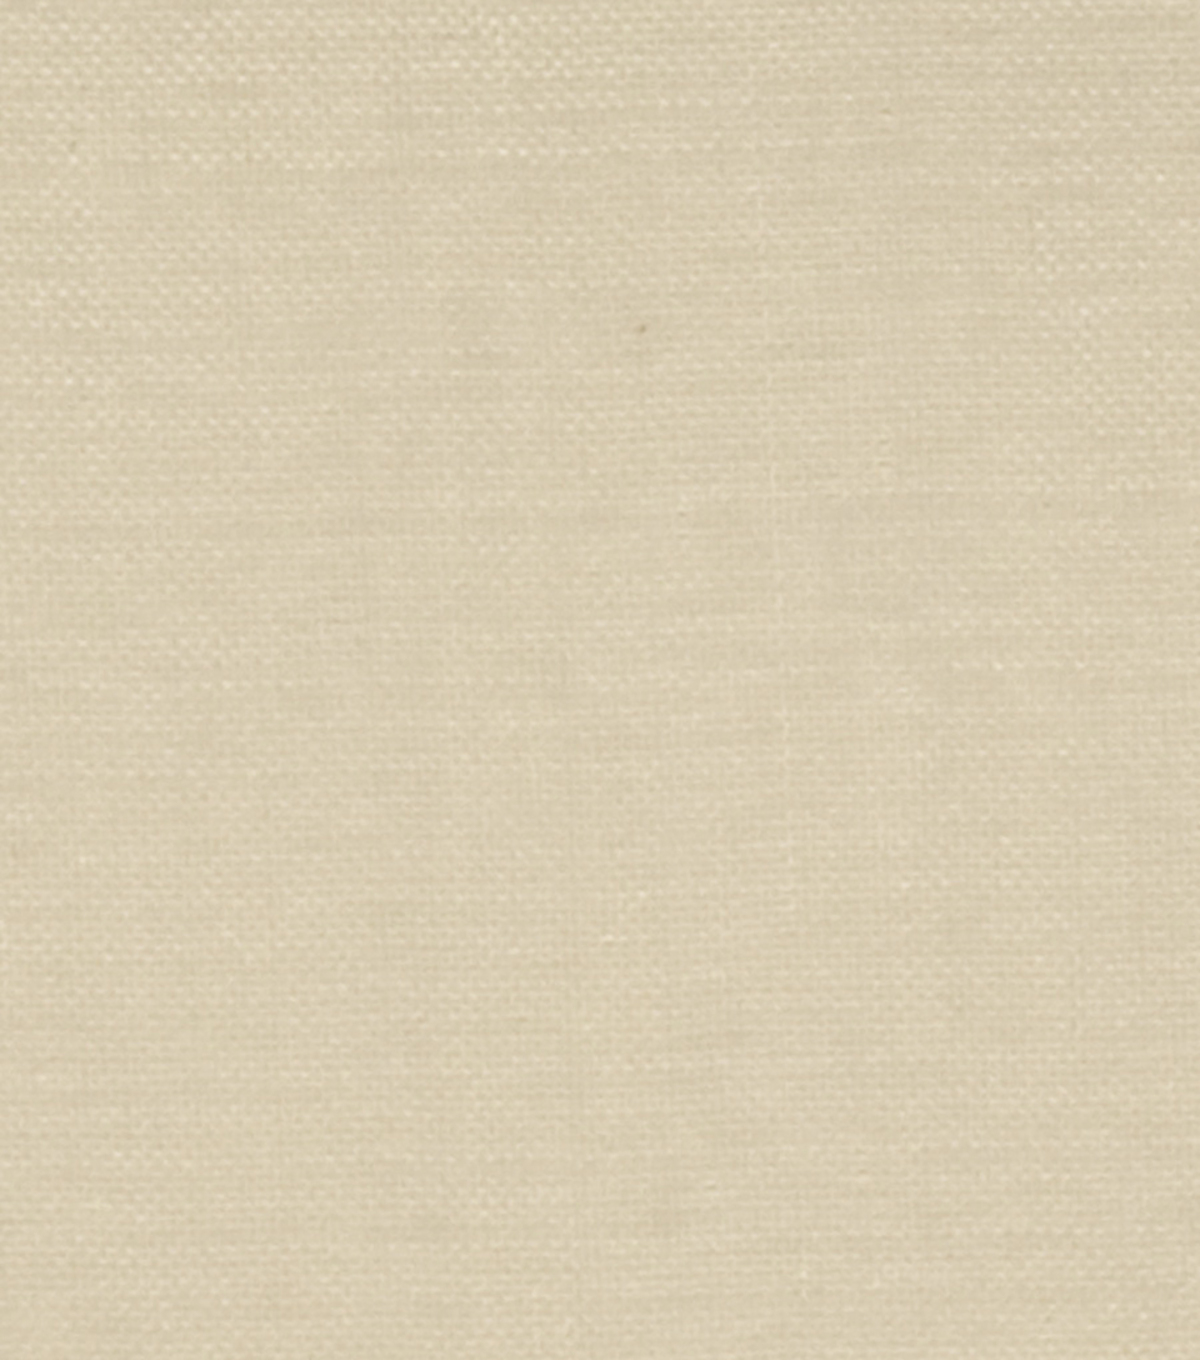 Home Decor 8\u0022x8\u0022 Fabric Swatch-Eaton Square Edna   Sand